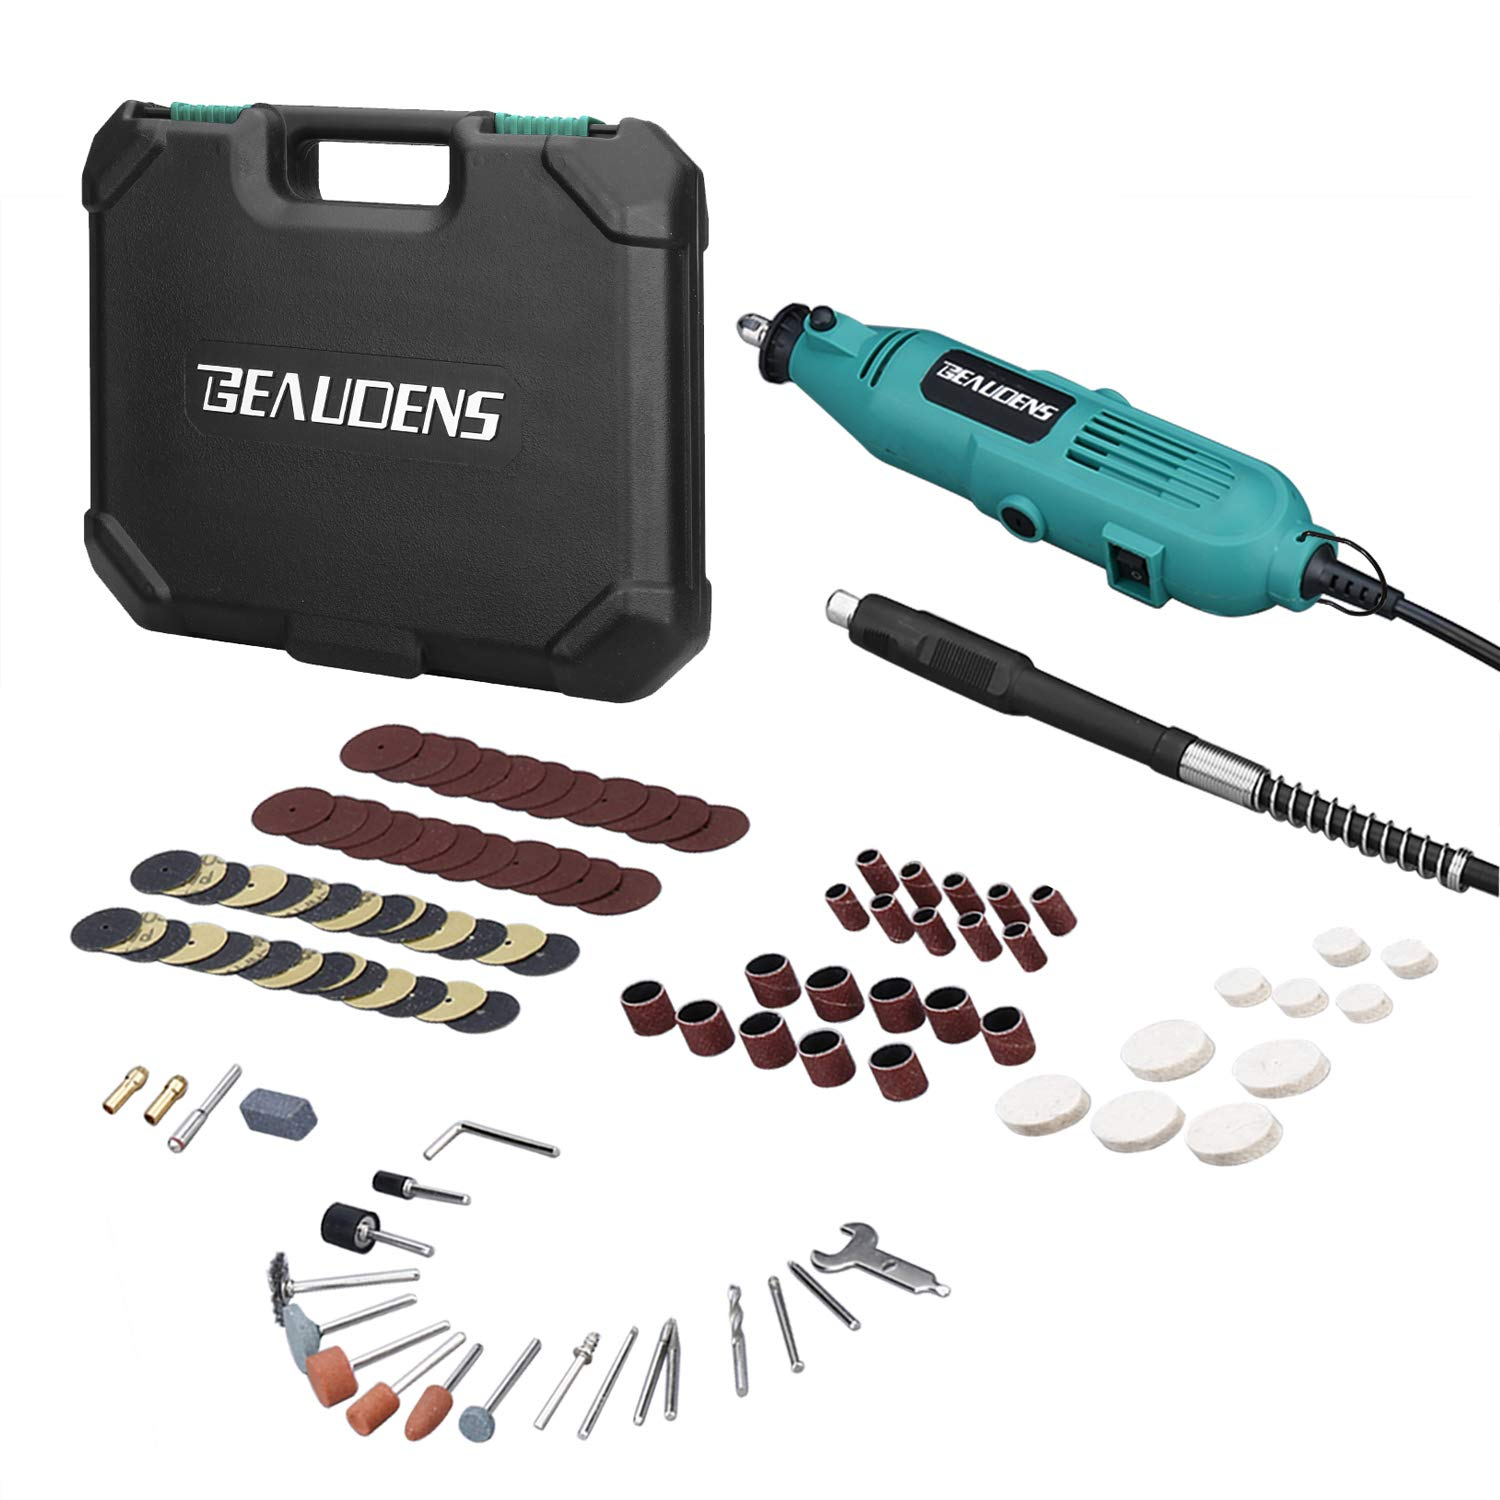 Rotary Tool Kit with Flex Shaft 100 Multifunctional Accessories 6 Adjustable Speed Solid Carrying Case and 2 Year Warranty for DIY Professionals